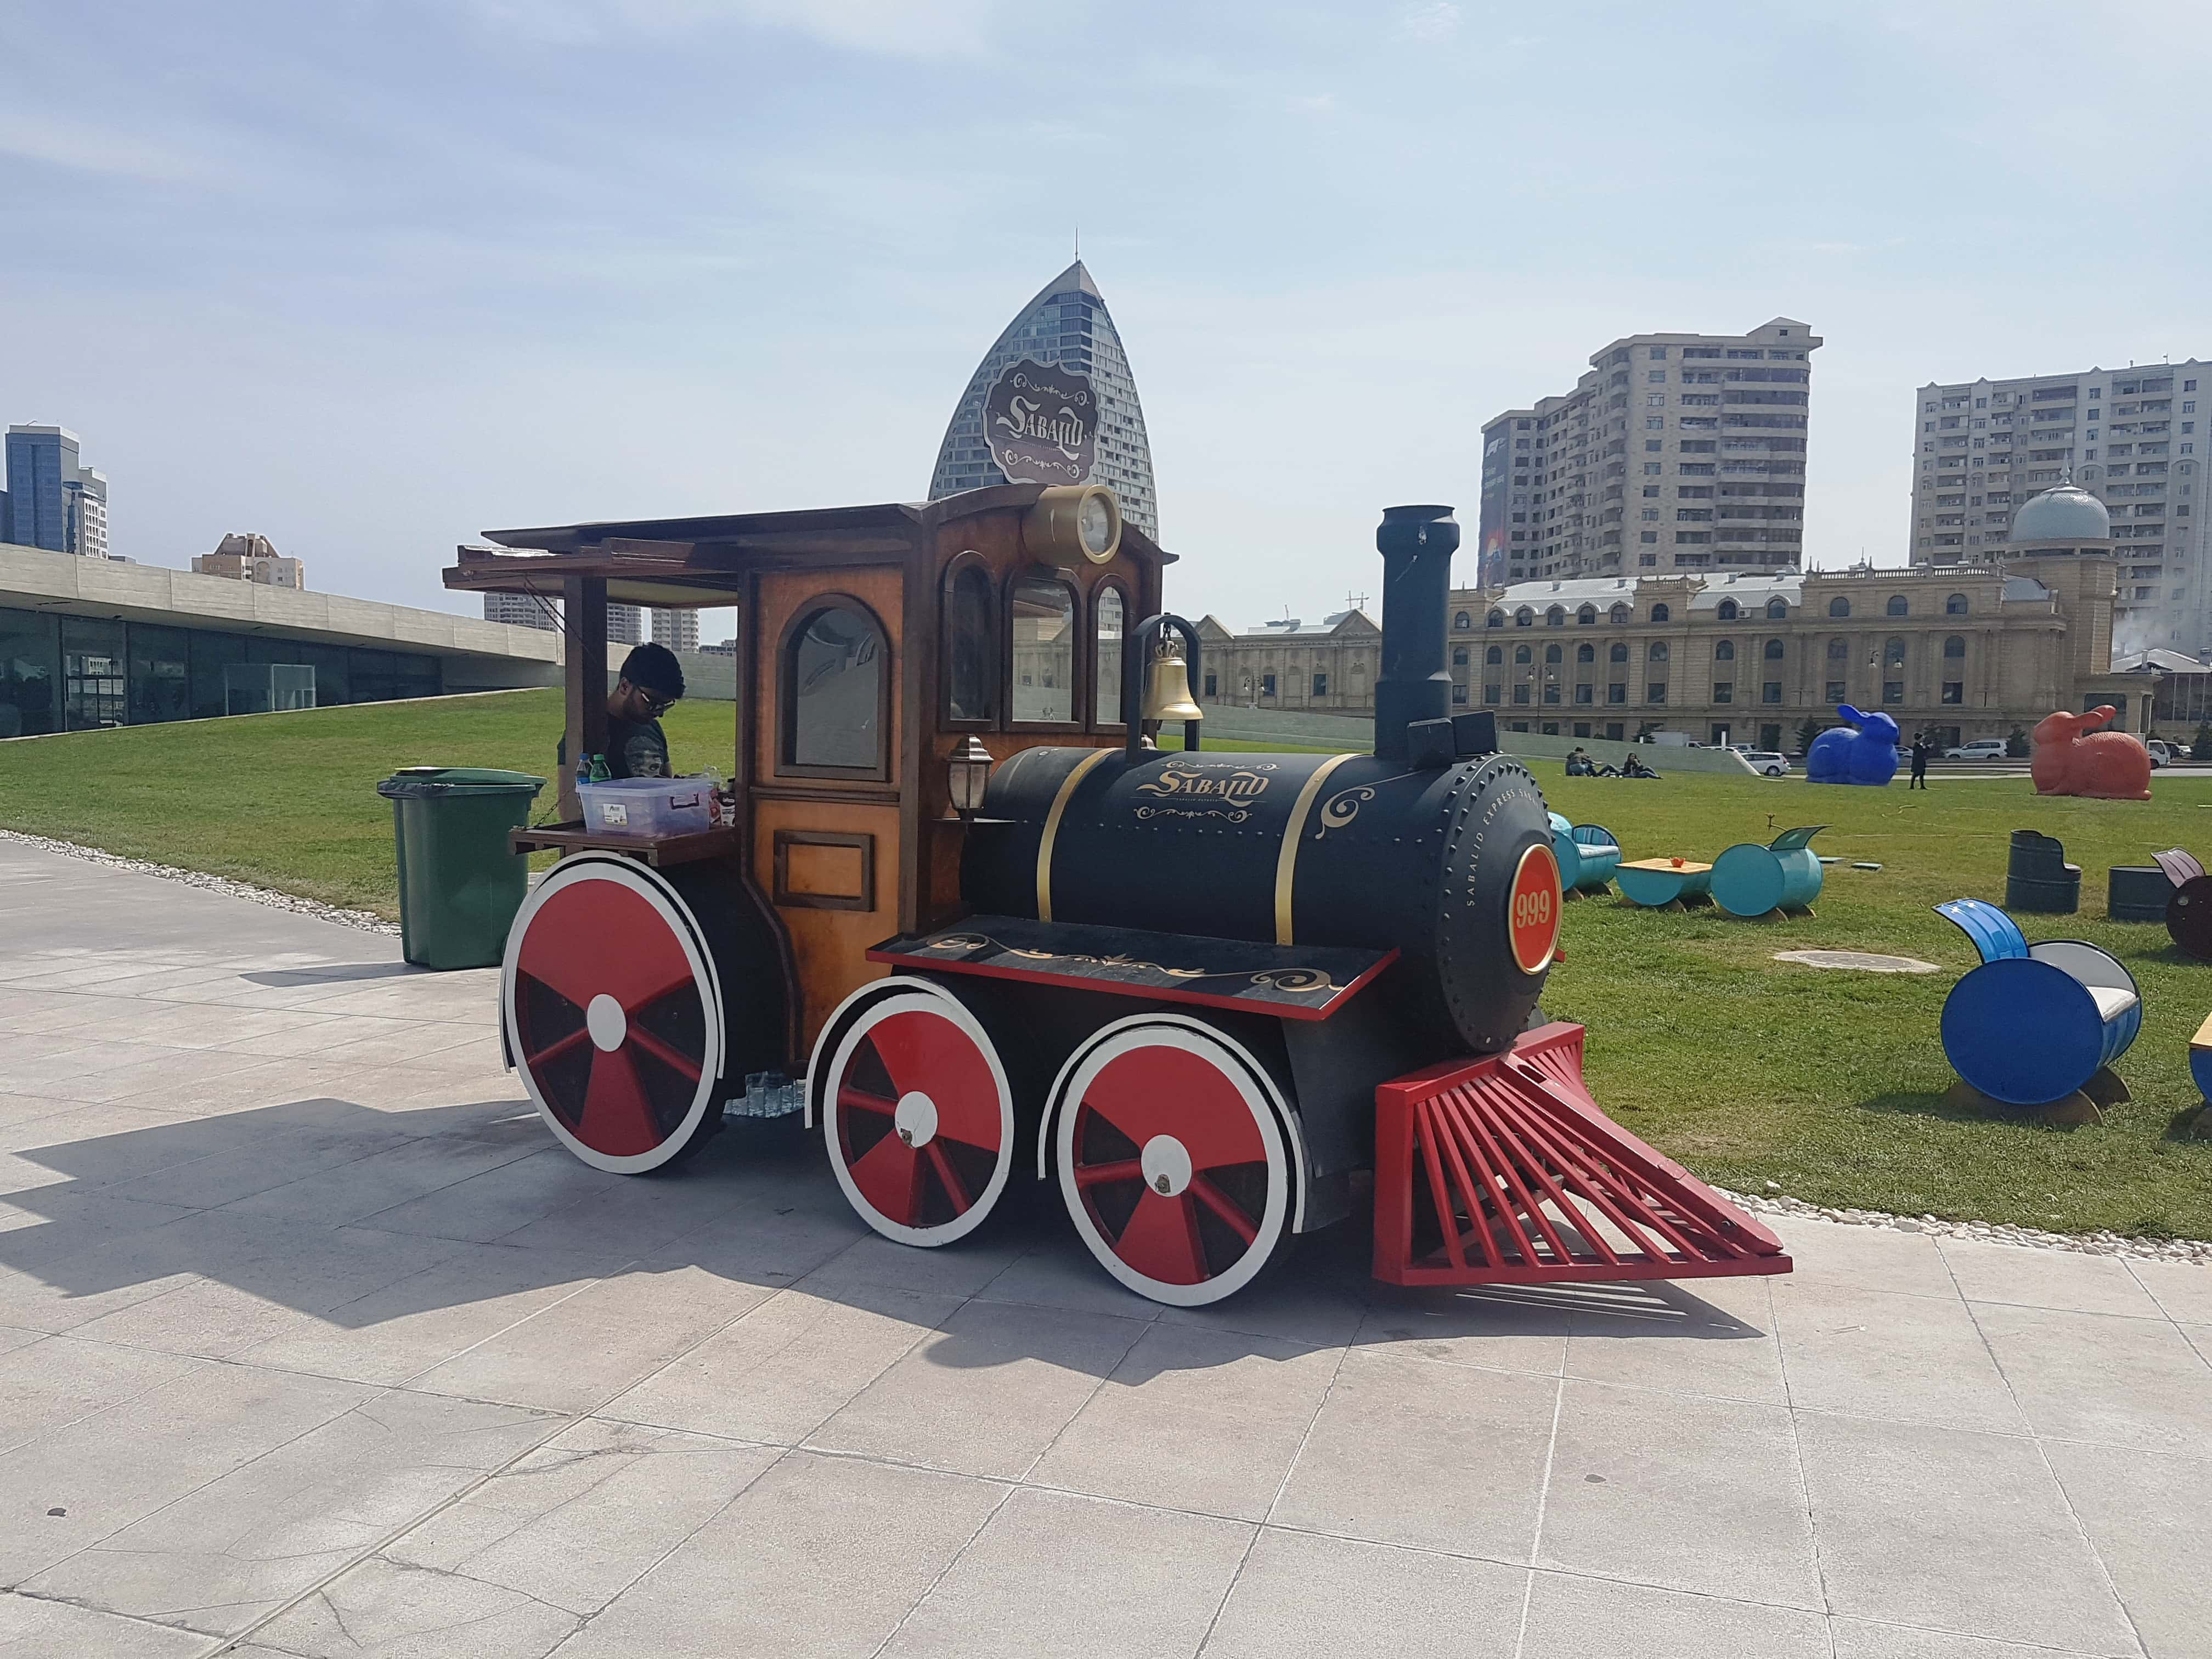 This little engine doubled up as showpiece and snack shop.